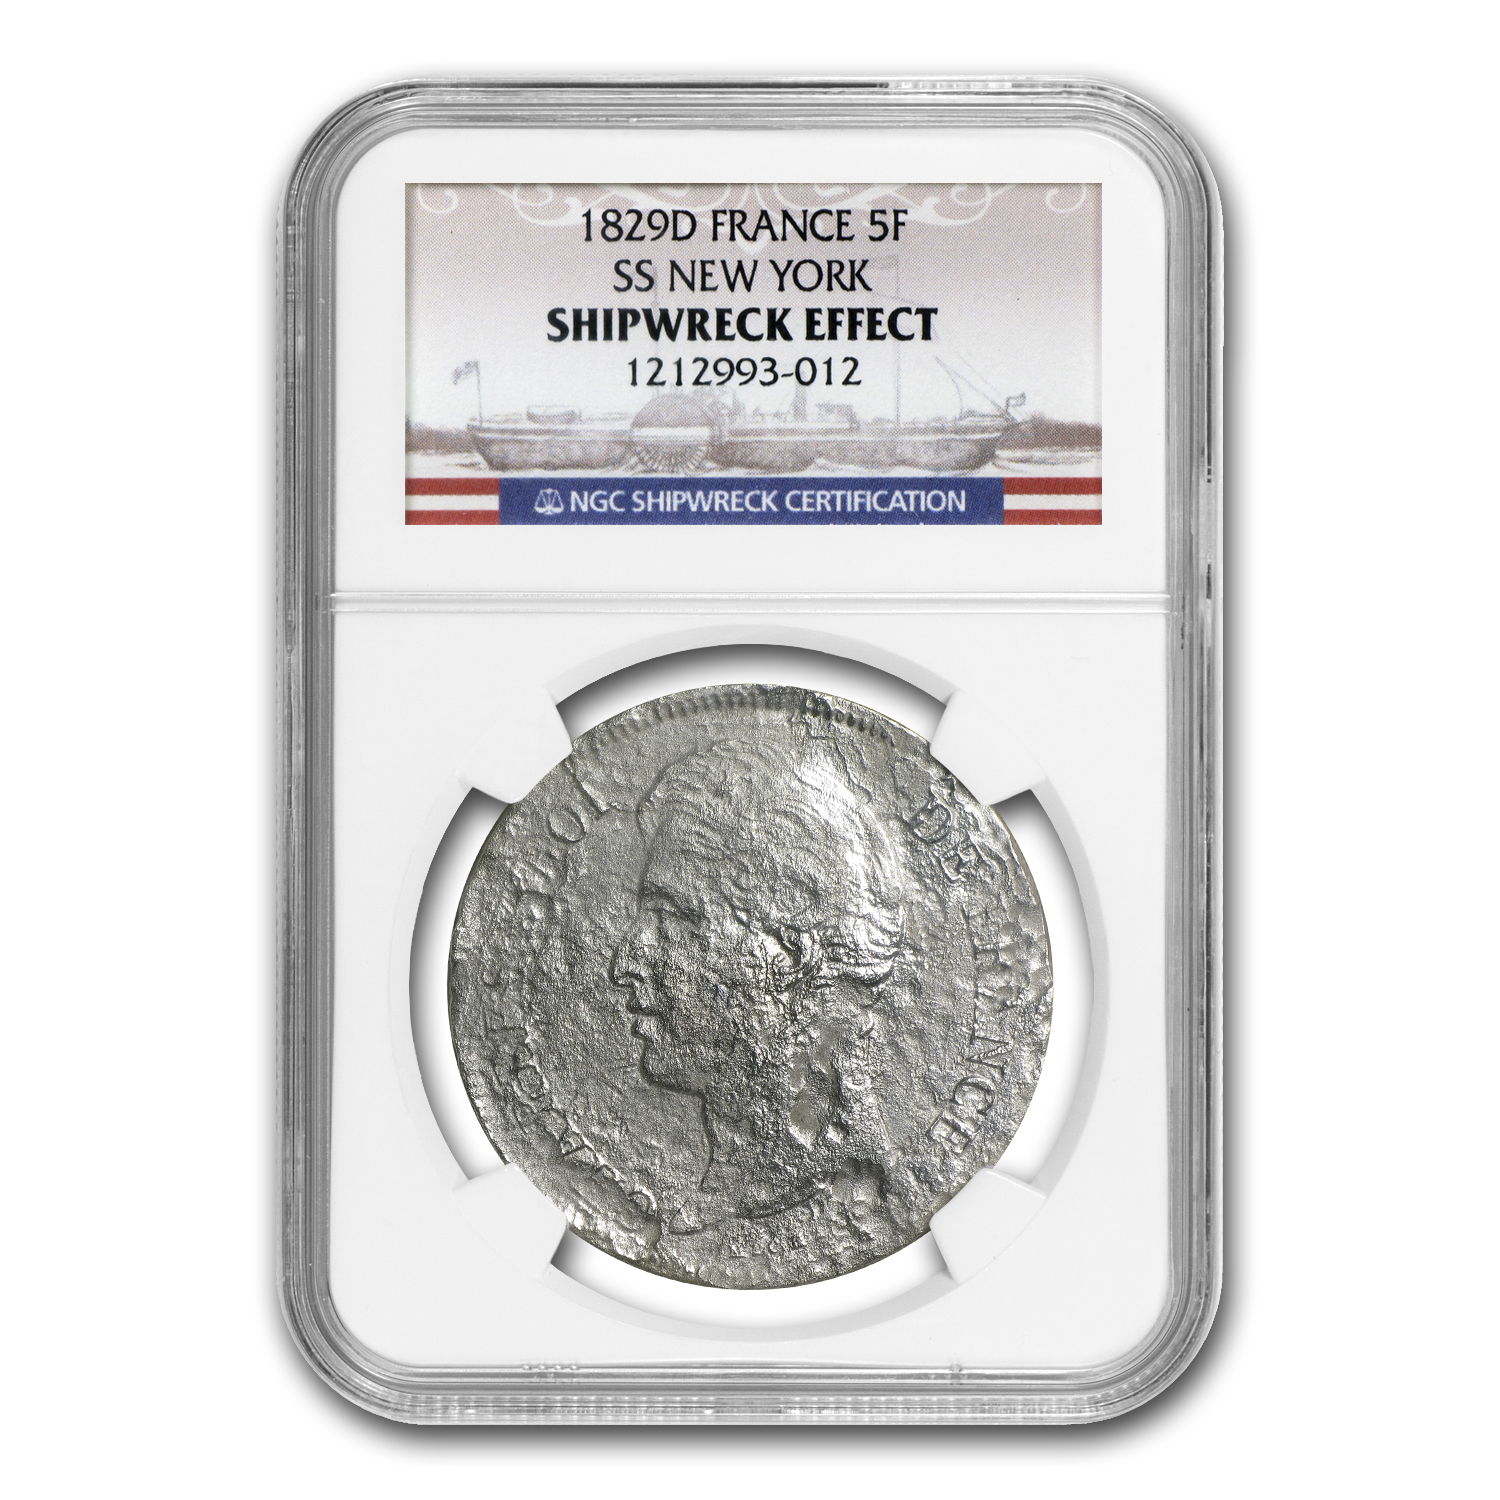 France 1829 Silver 5 Francs SS New York NGC Shipwreck Effect